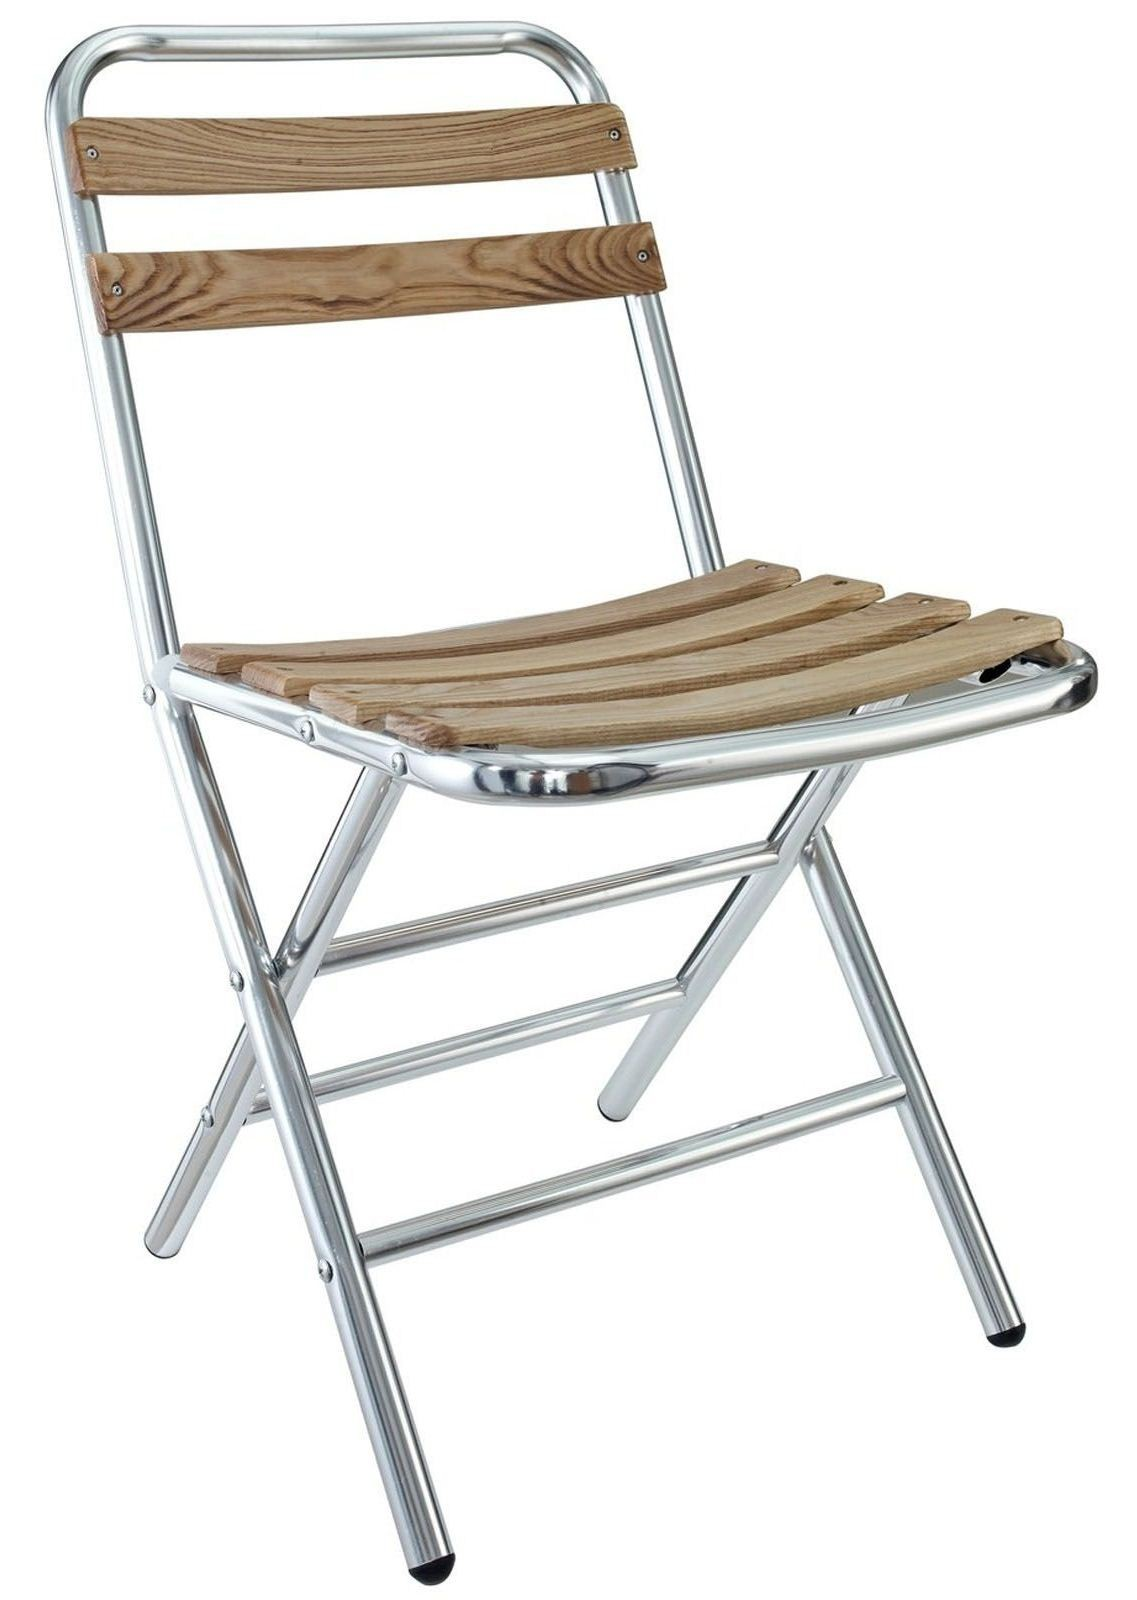 Folderia Wooden Slat Aluminum Folding Chair From Renegade EEI 746 Coleman